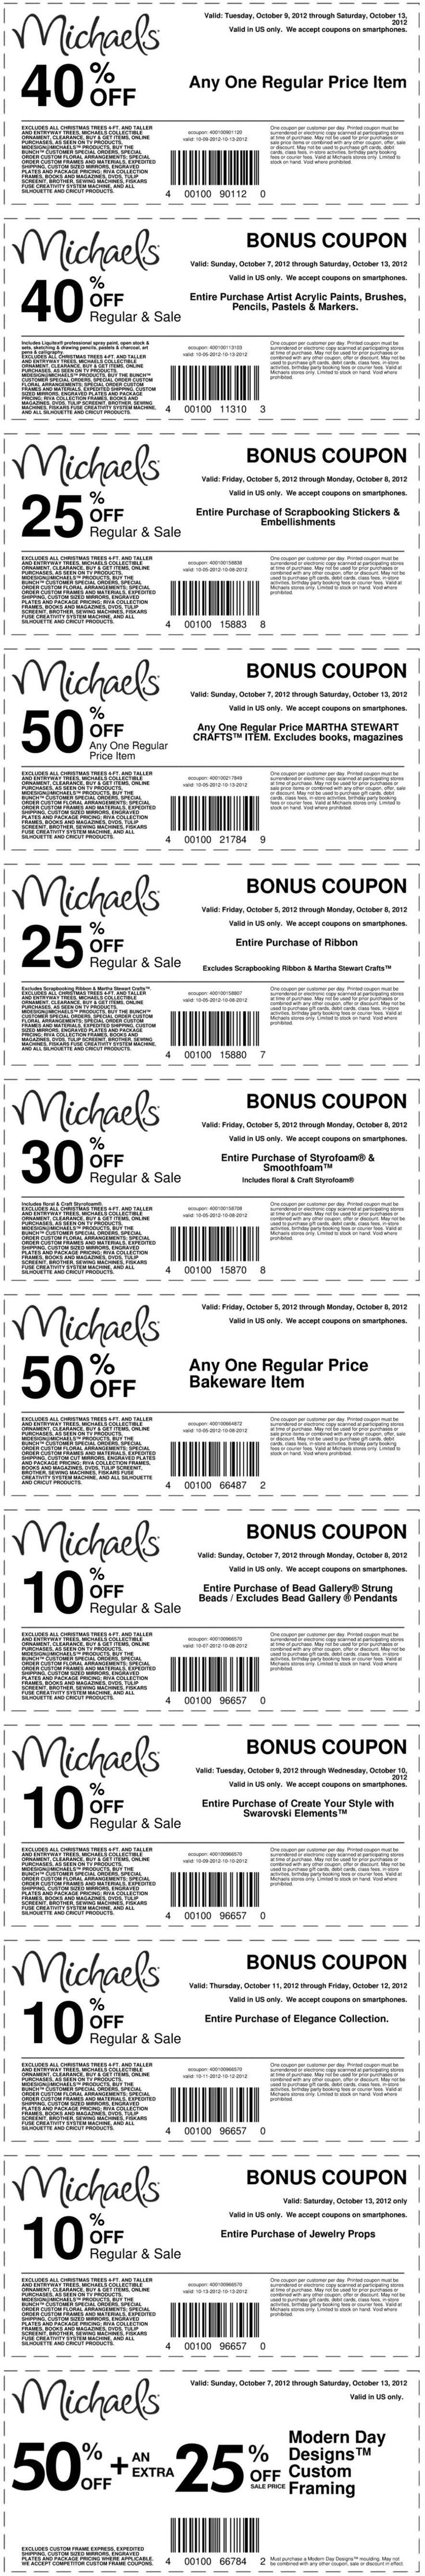 10 best environmental sustainability images on pinterest michaels 40 off a single item and more at michaels crafts coupon via the fandeluxe Images